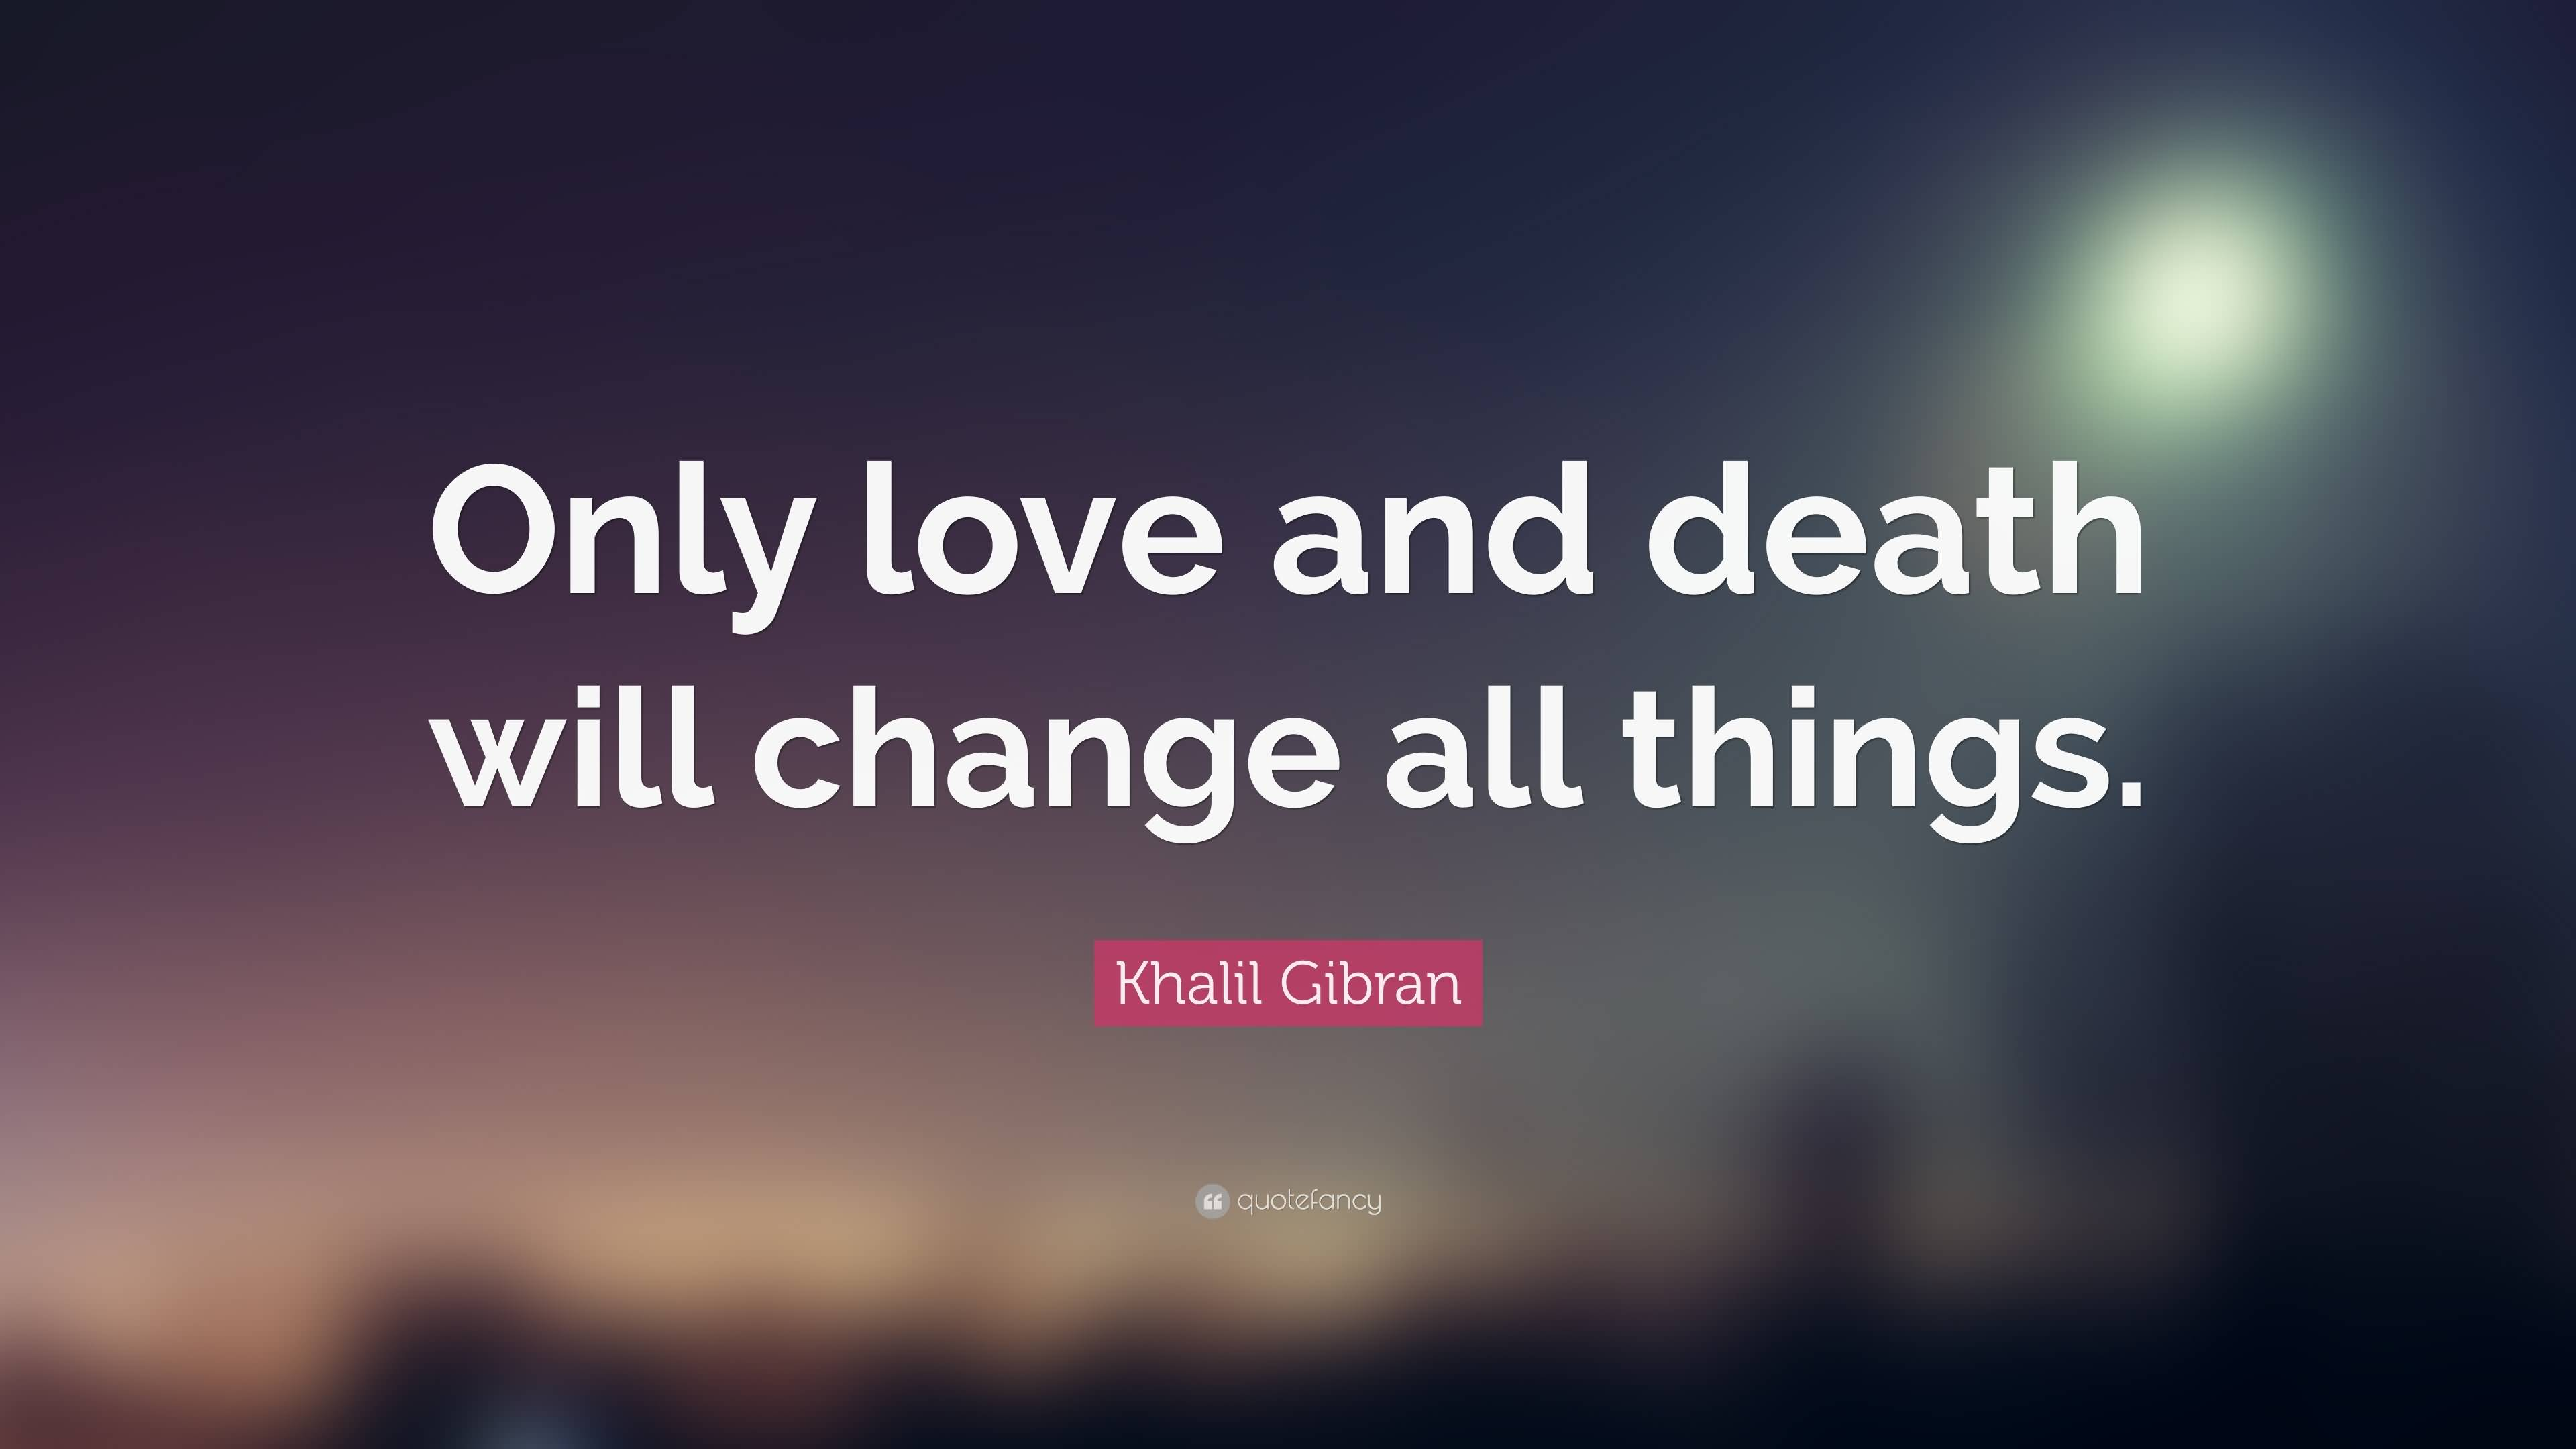 Quotes About Love And Death Quotes About Love And Death 03  Quotesbae